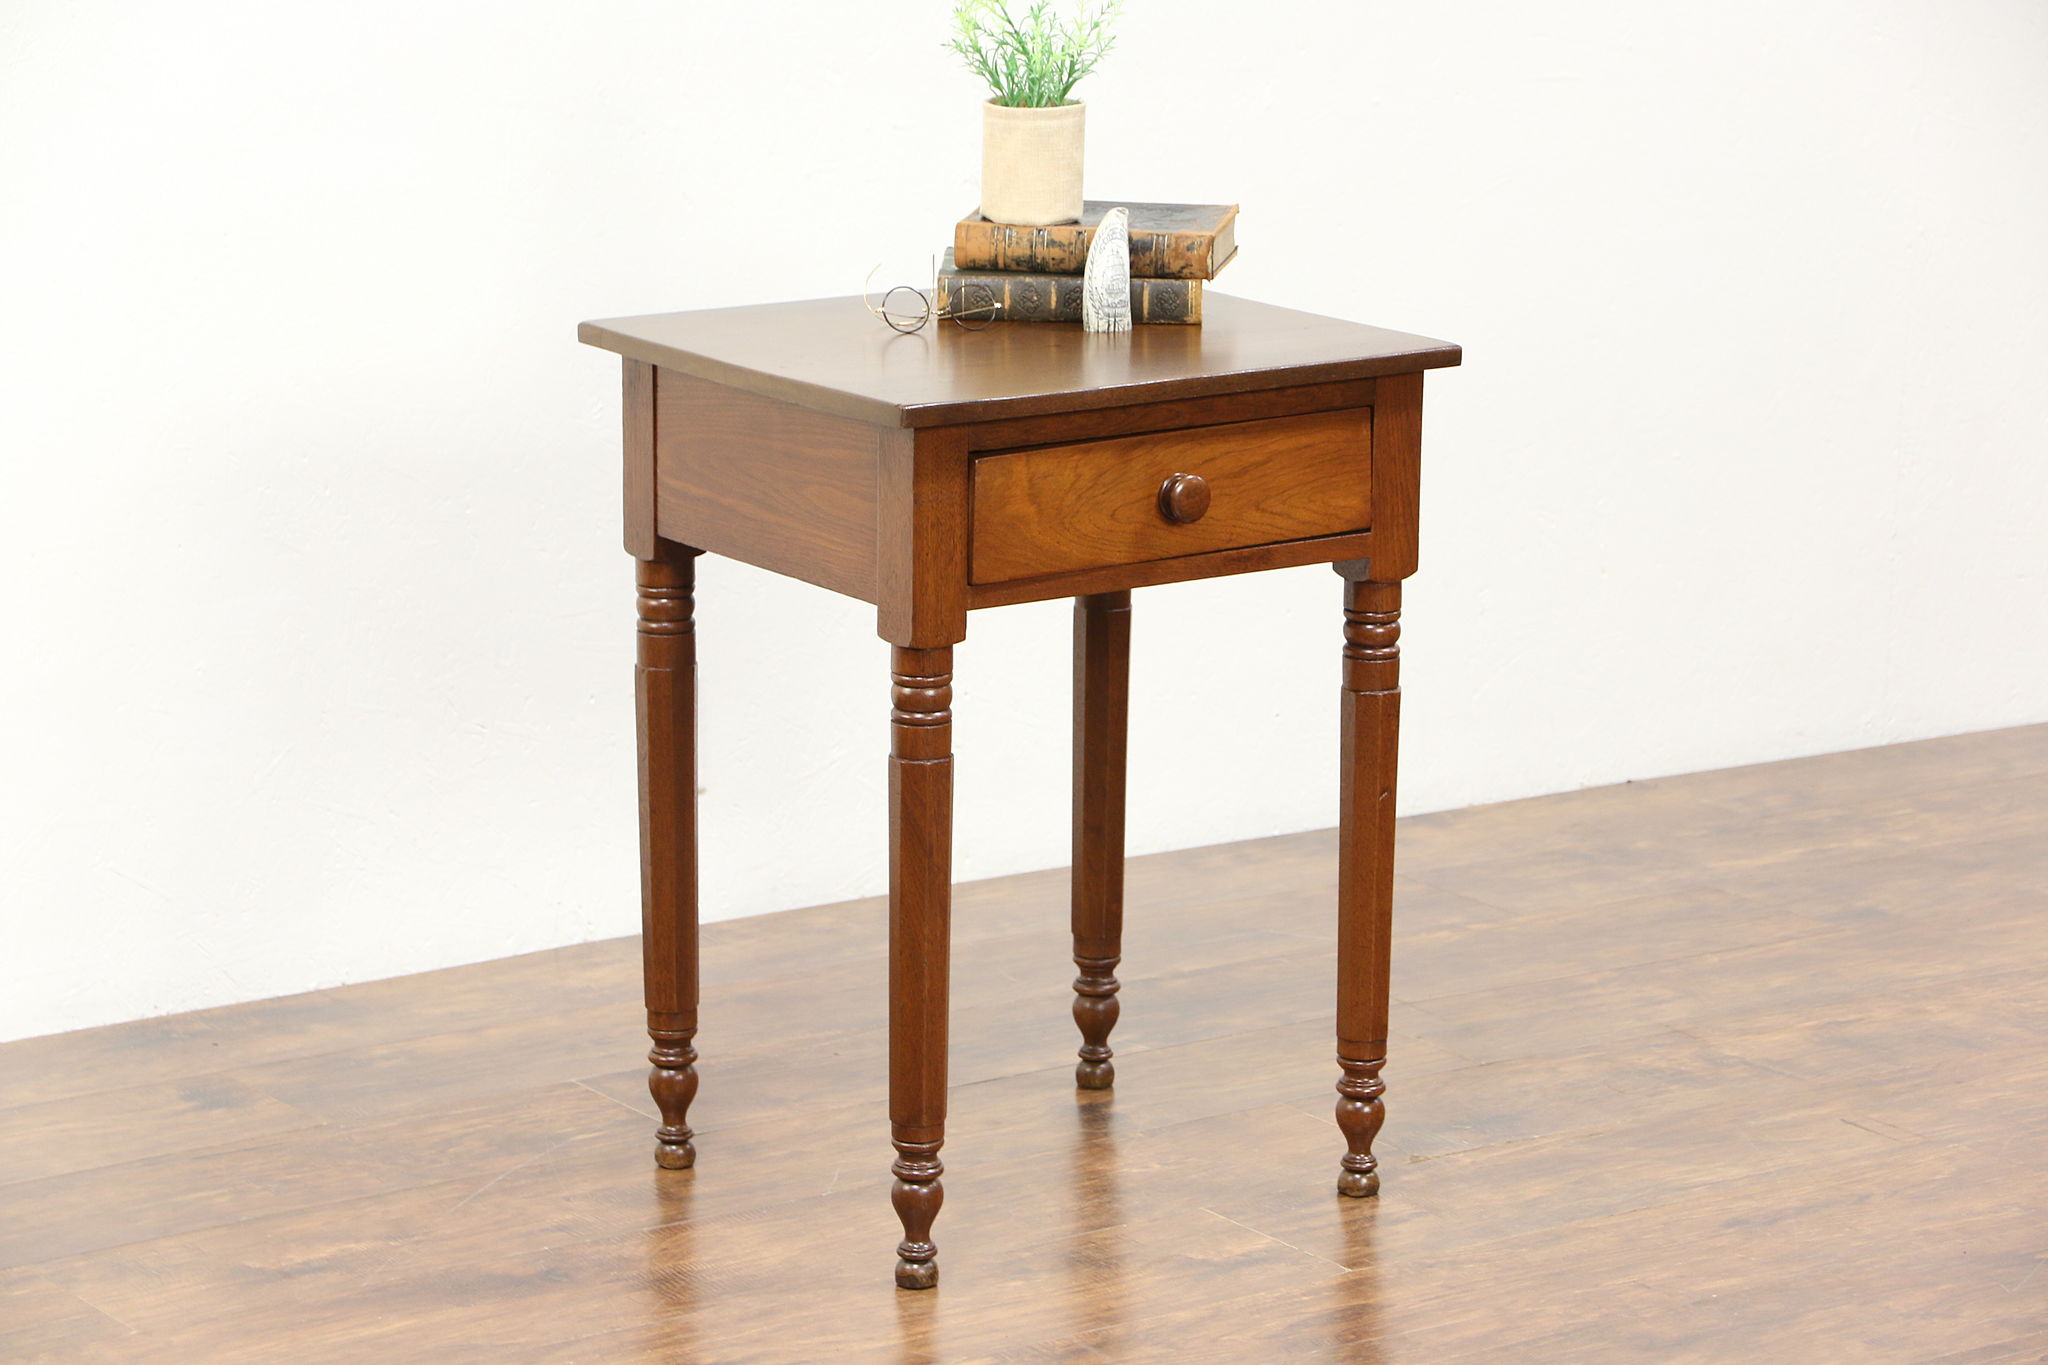 Walnut 1840 Antique Nightstand, Lamp Or End Table